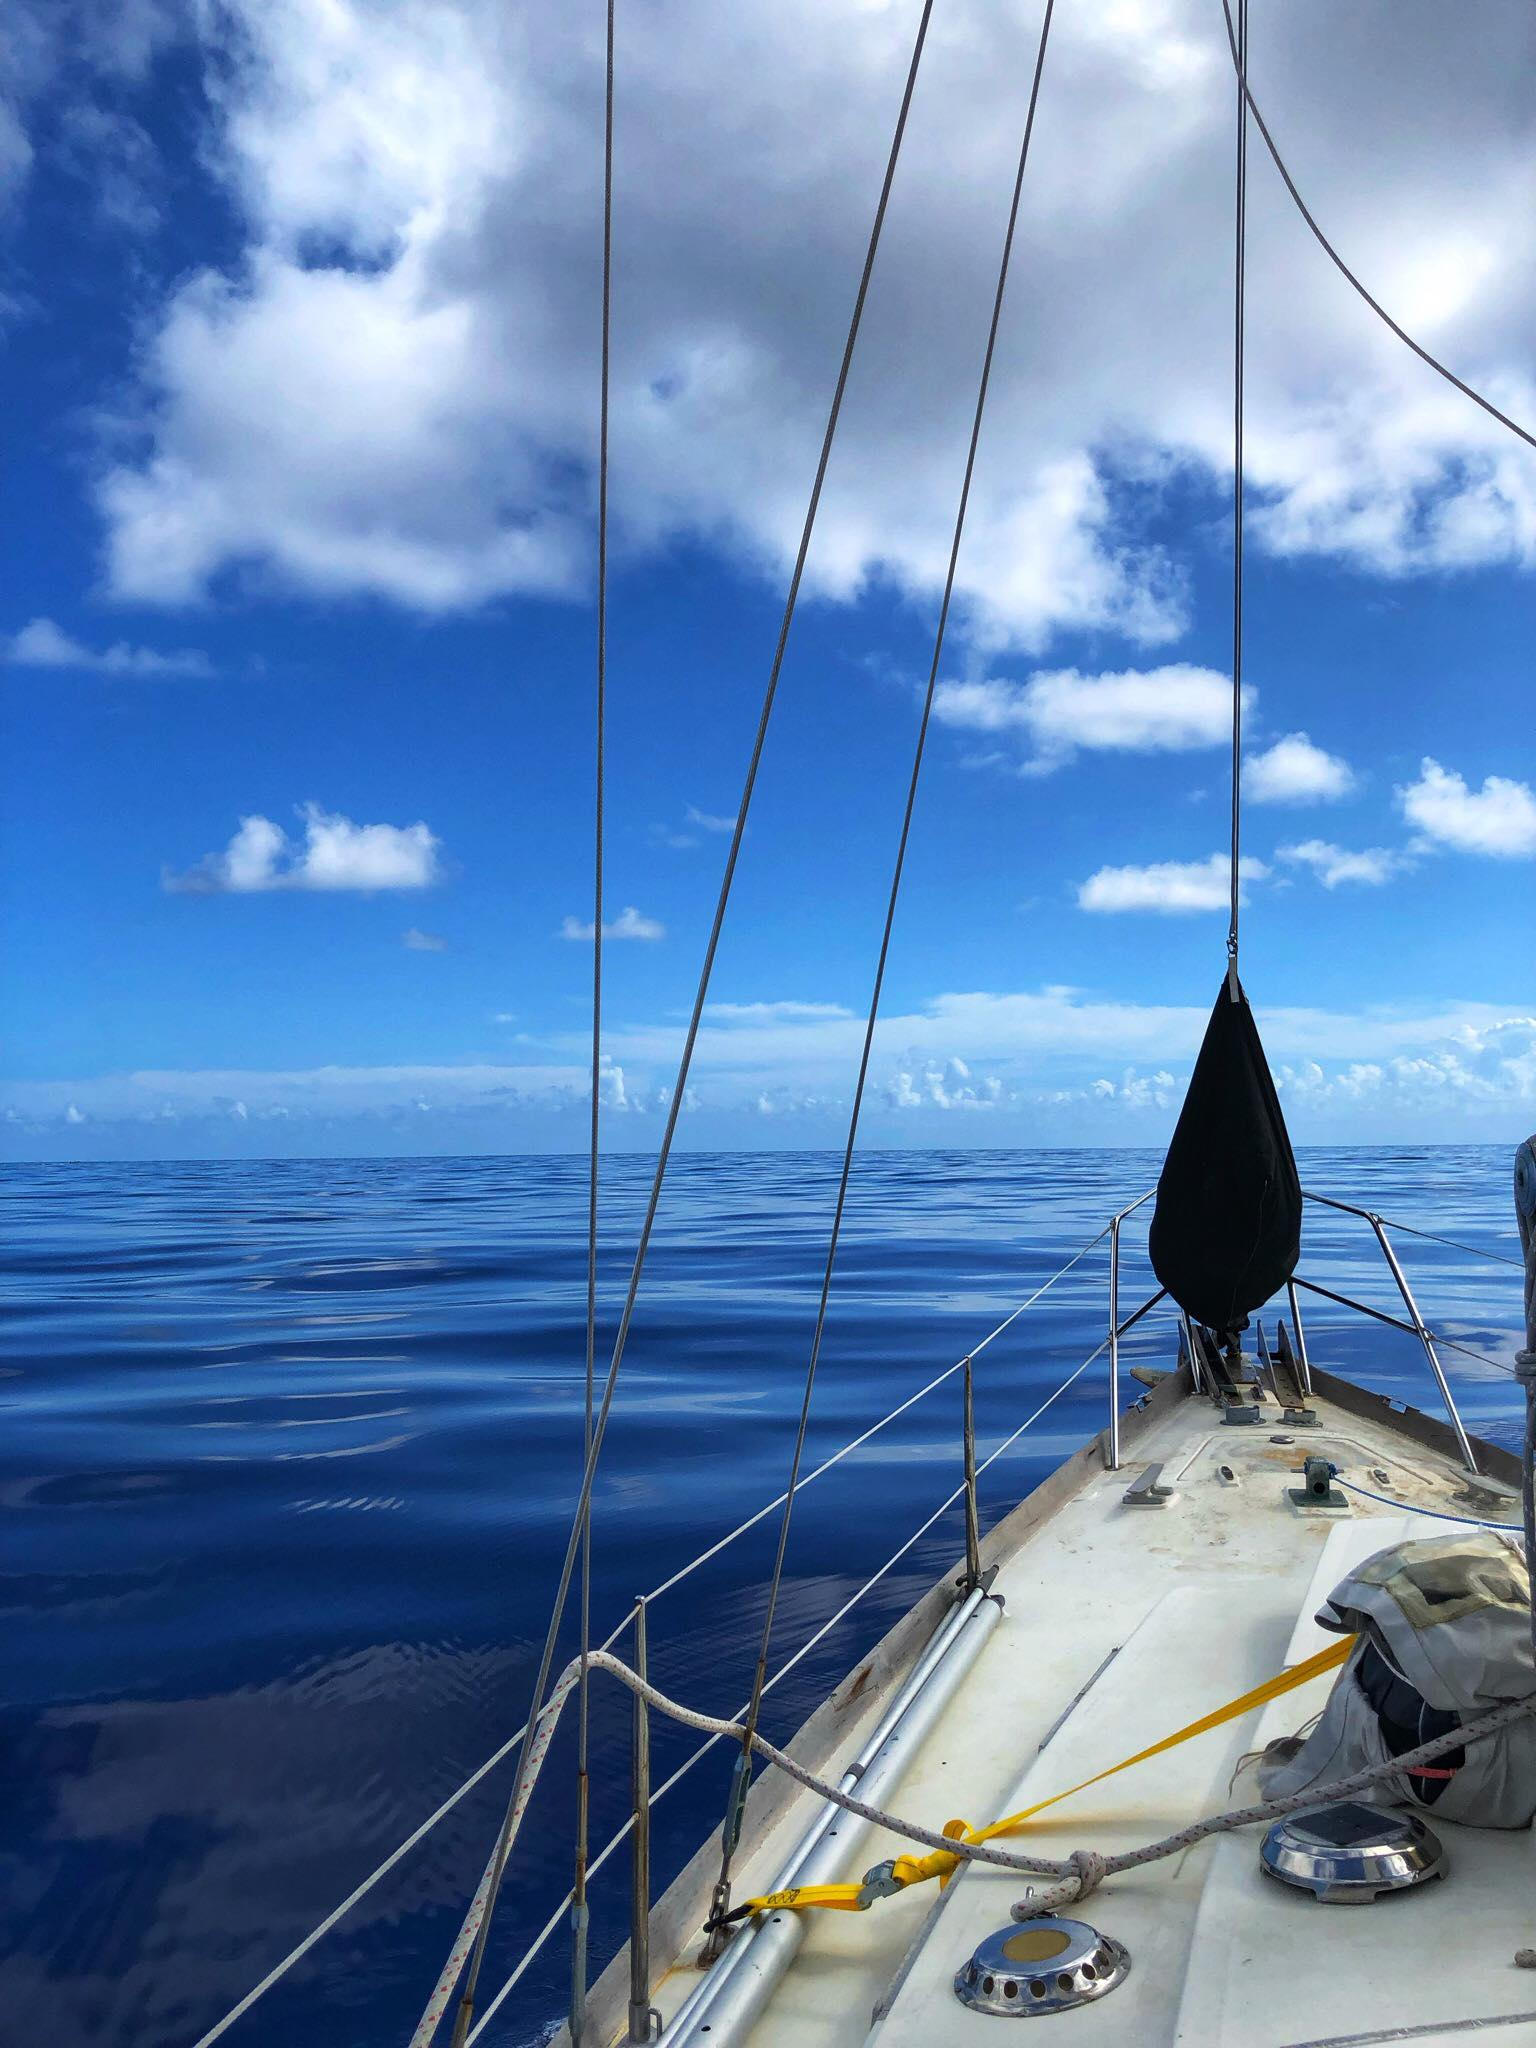 Sailing Life Day 298 Arrived in PUERTO RICO11.jpg